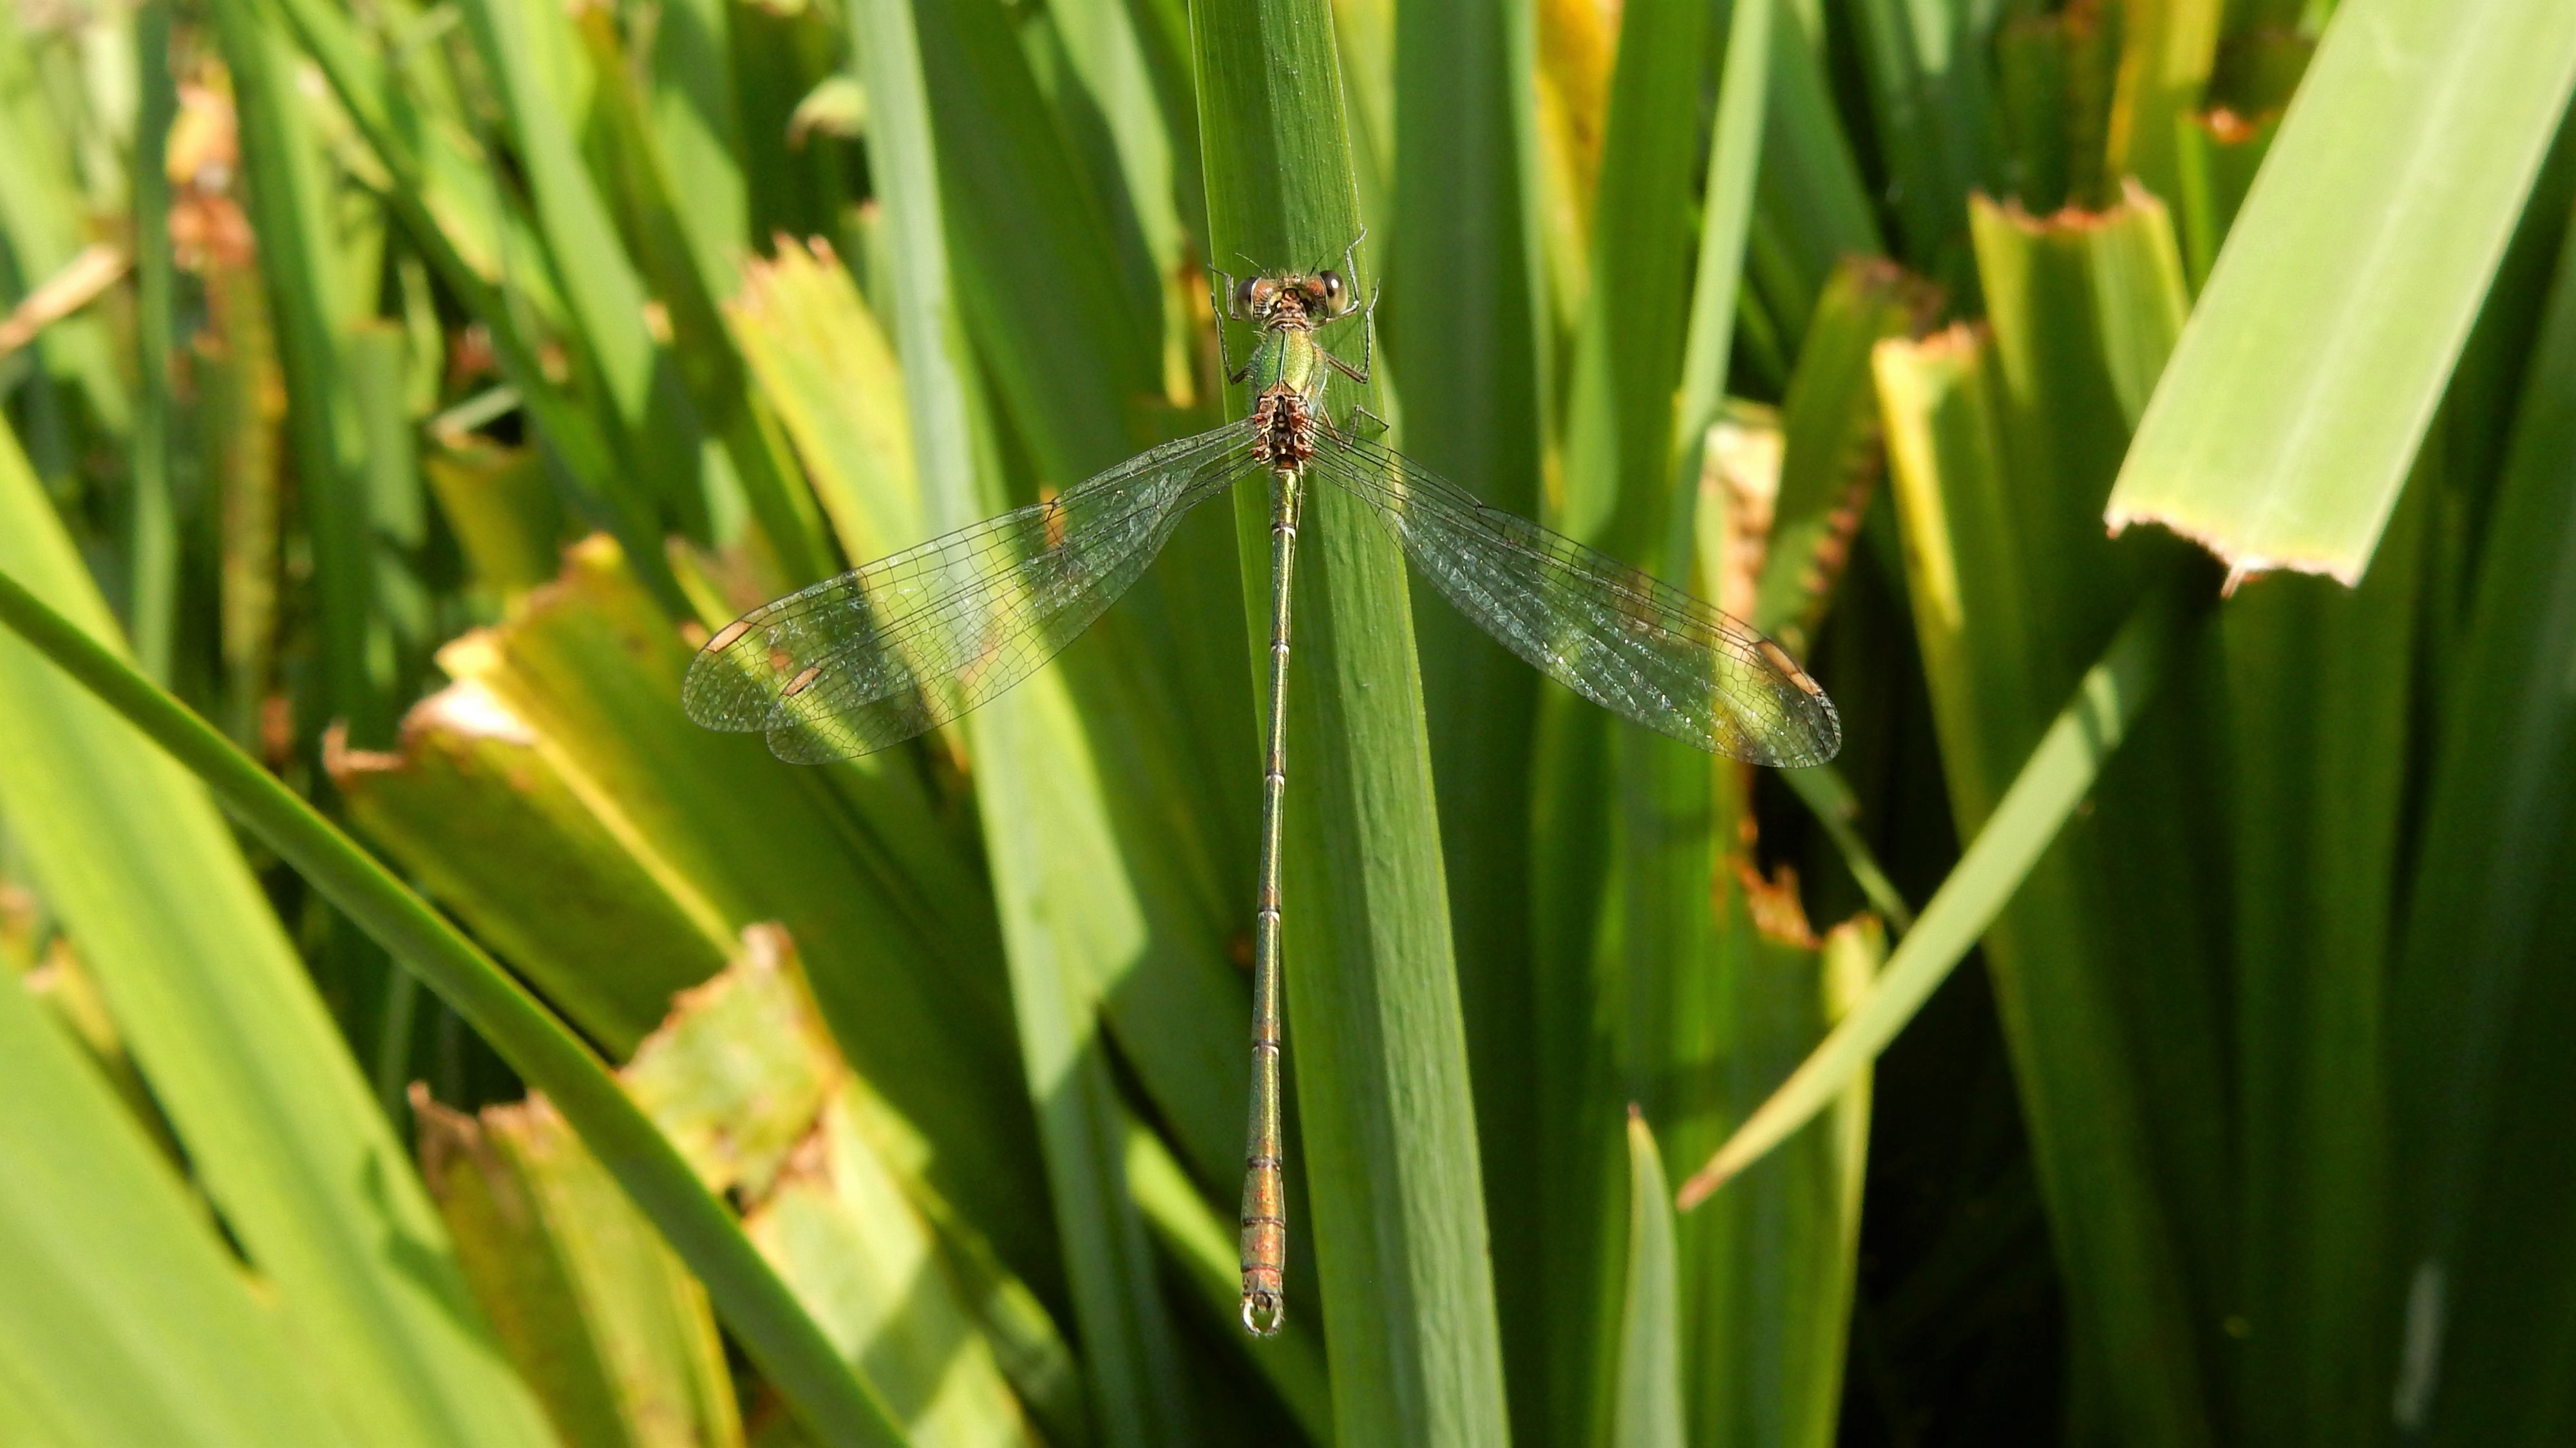 A female banded demoiselle damselfly is thin and green.